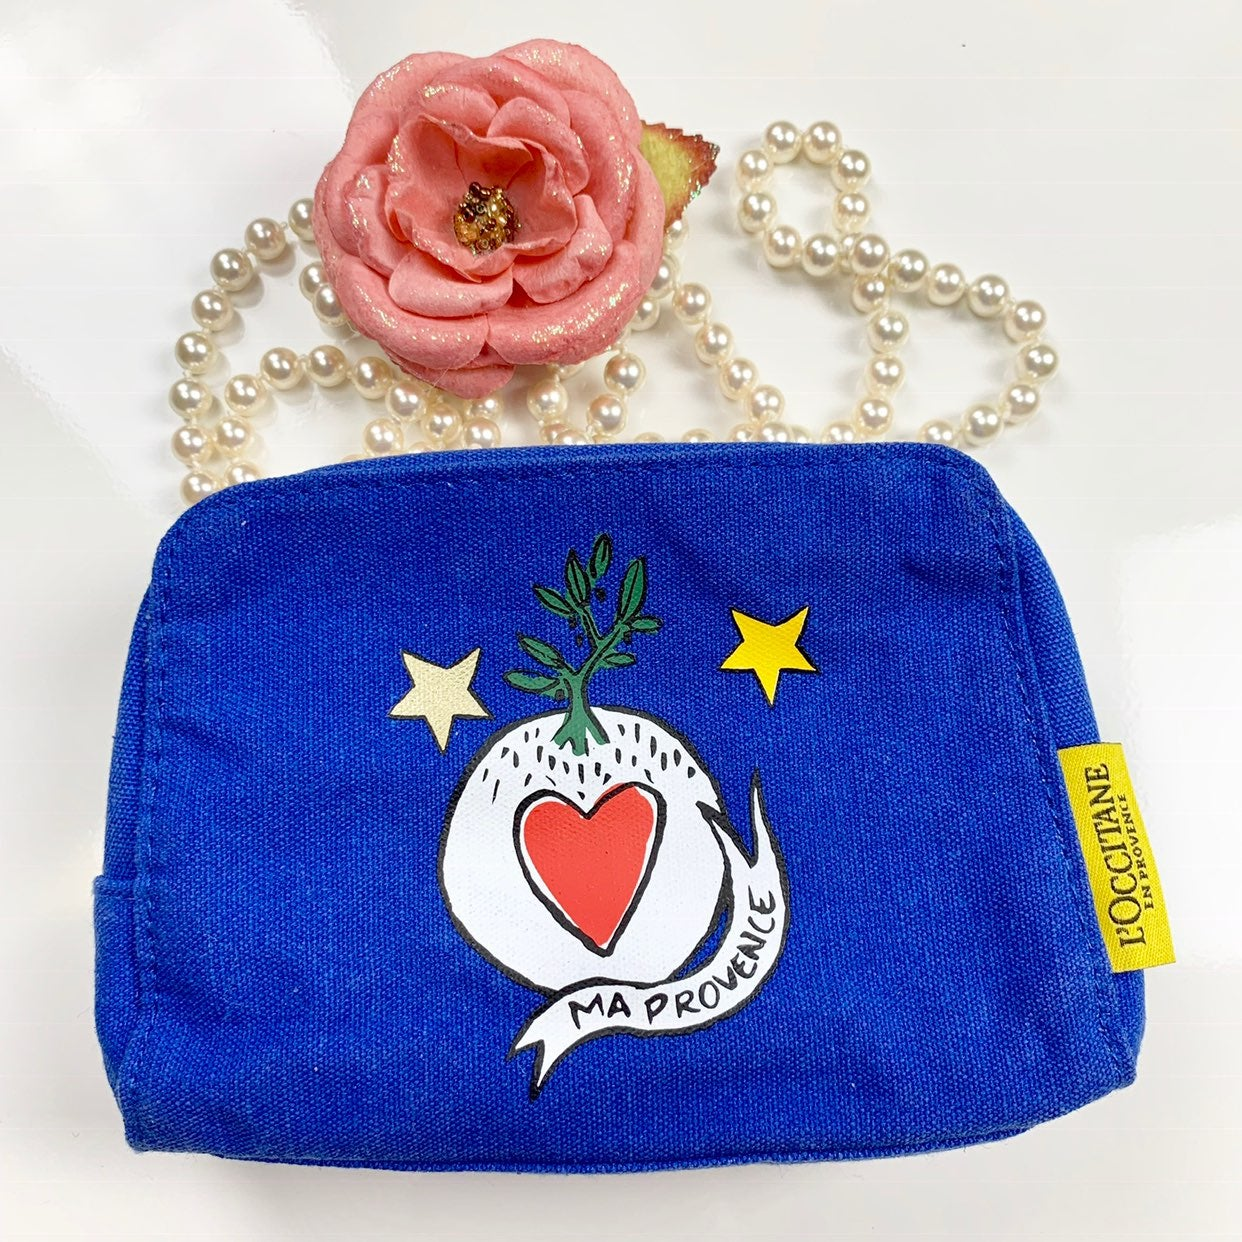 L'Occitane Canvas Cosmetic bag